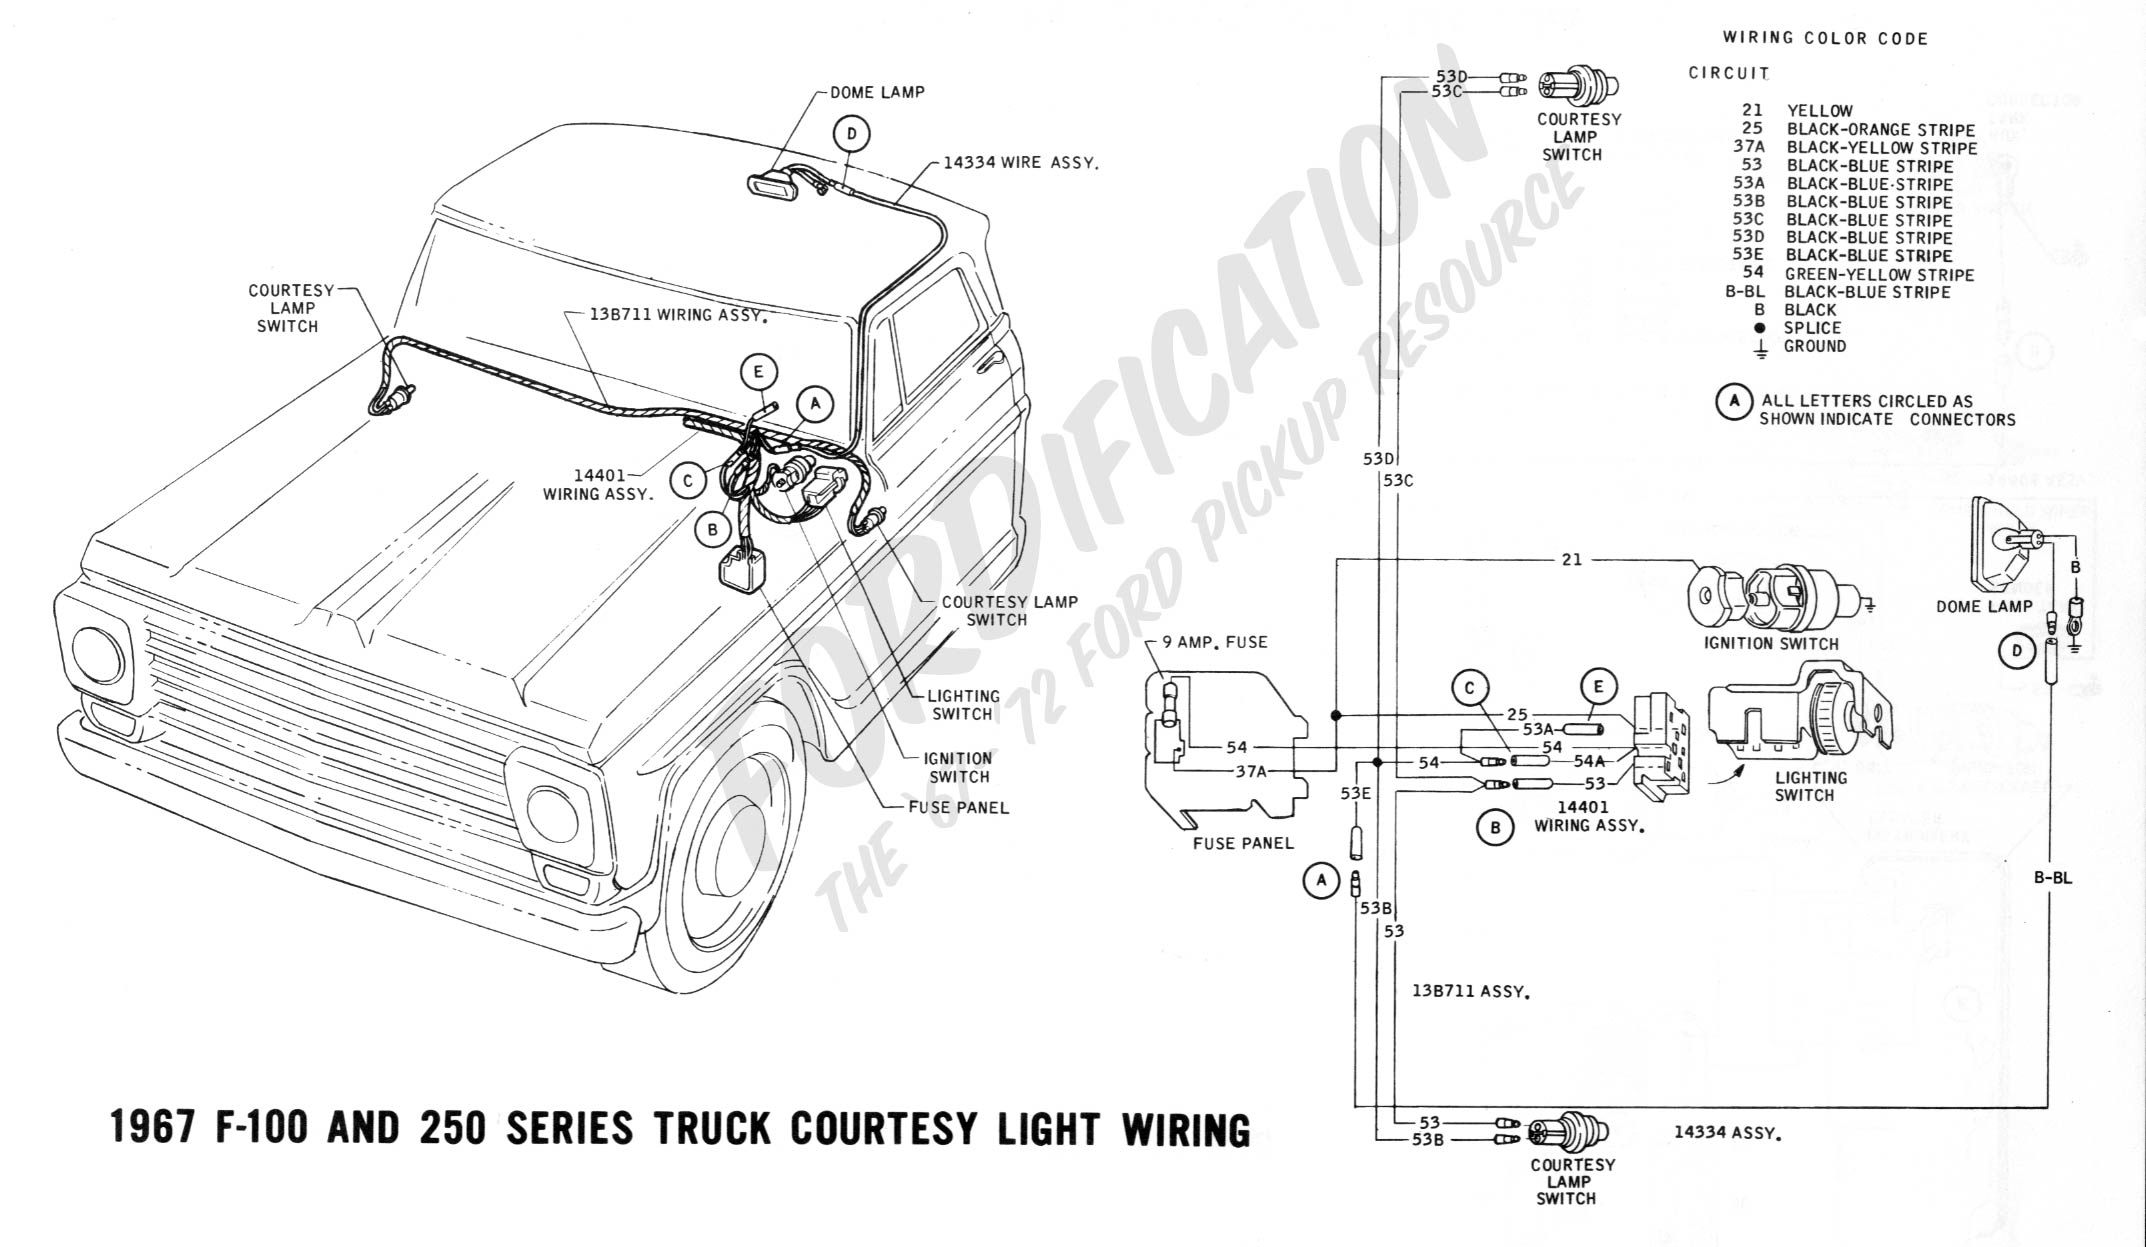 wiring 1967courtesylight wiring in ignition switch in 1966 f100 ford truck enthusiasts forums 1969 Ford F100 Steering Column Wiring Diagram at crackthecode.co